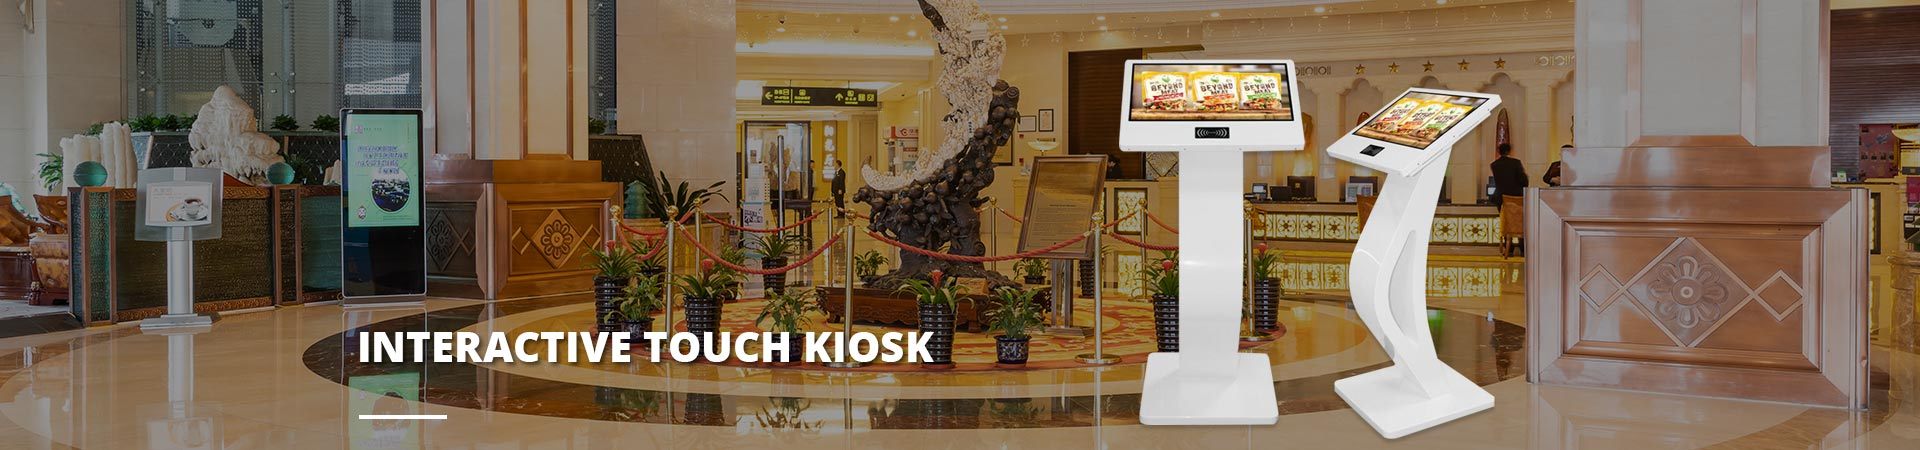 Interactive Touch Kiosk